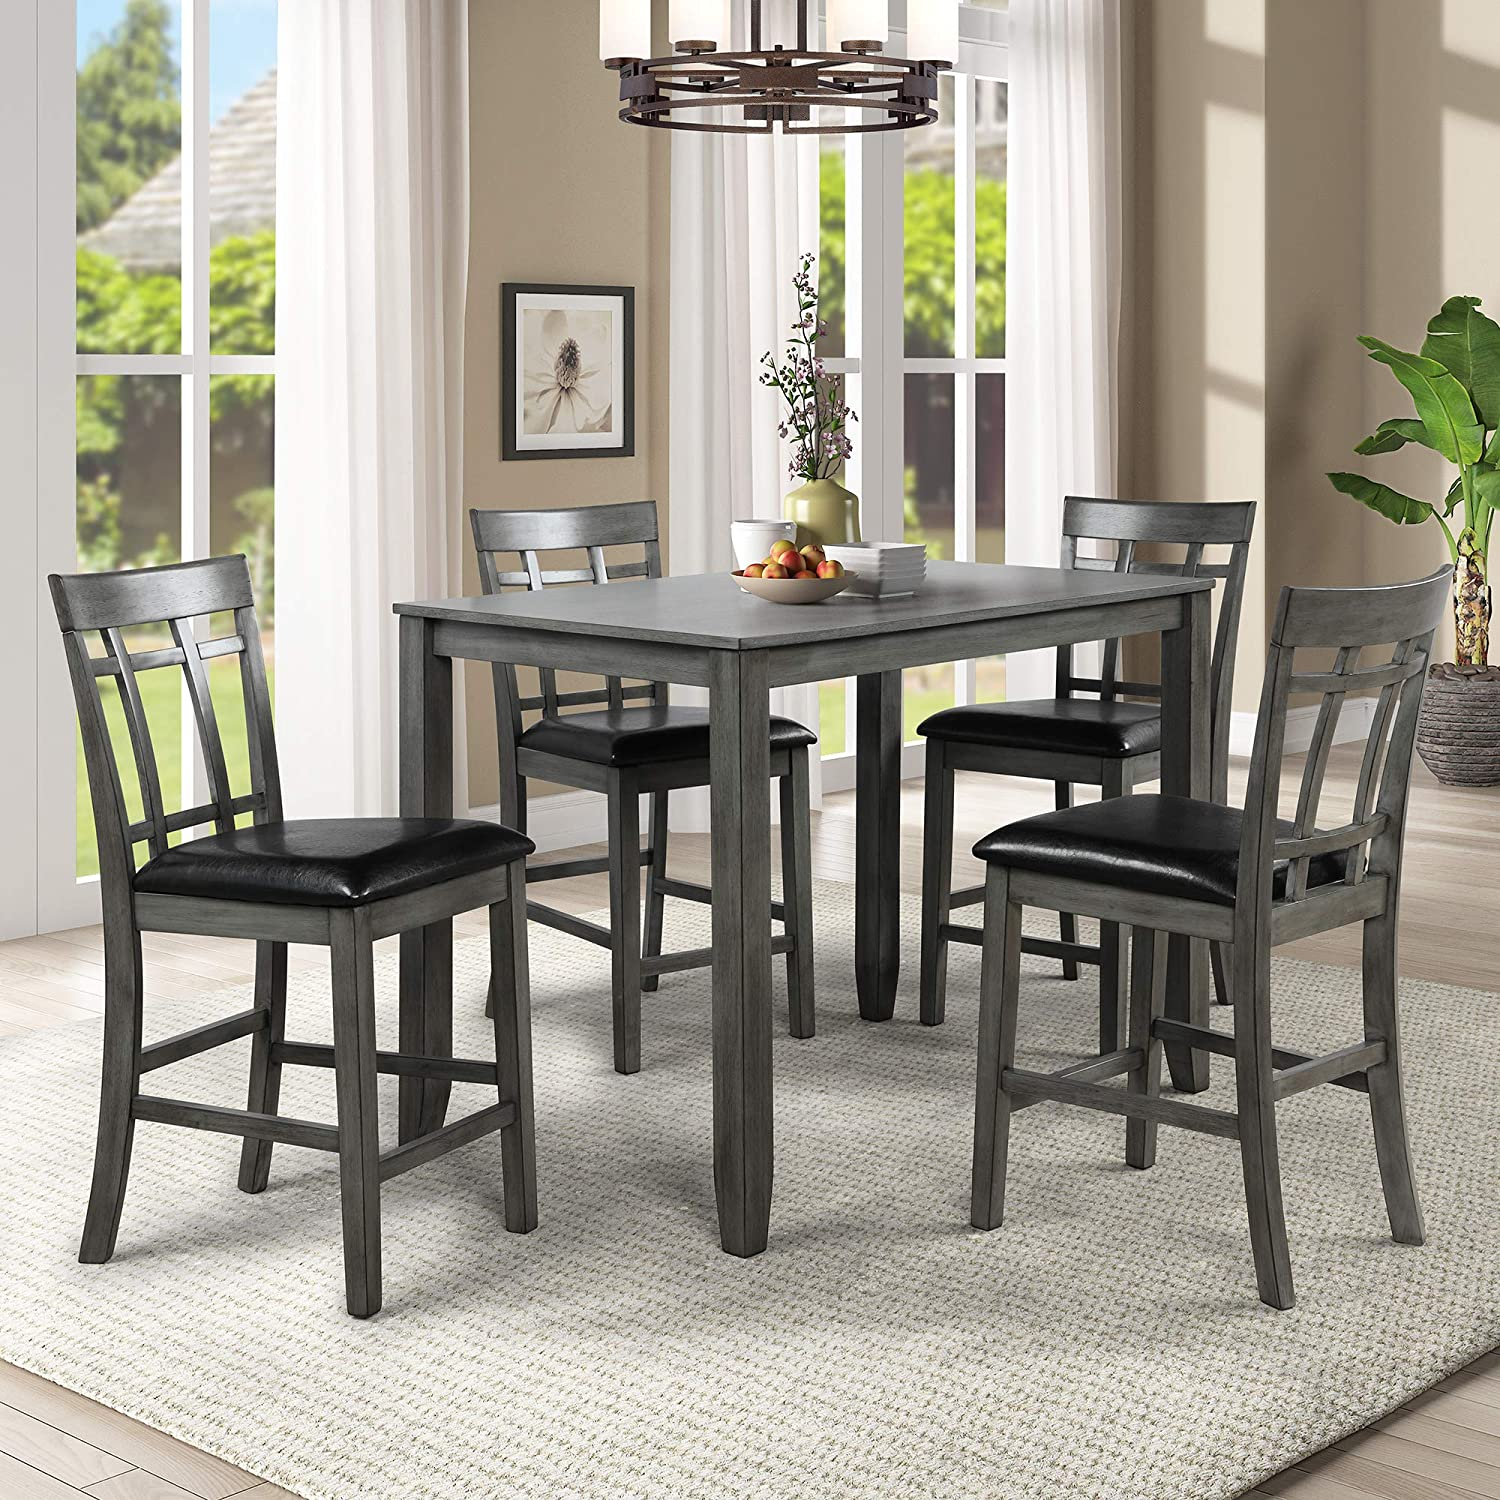 Harper Bright Designs 5 Piece Counter Height Bar Table With 4 Chairs Pub Table Set For Dining Room Kitchen Room Pub And Bistro